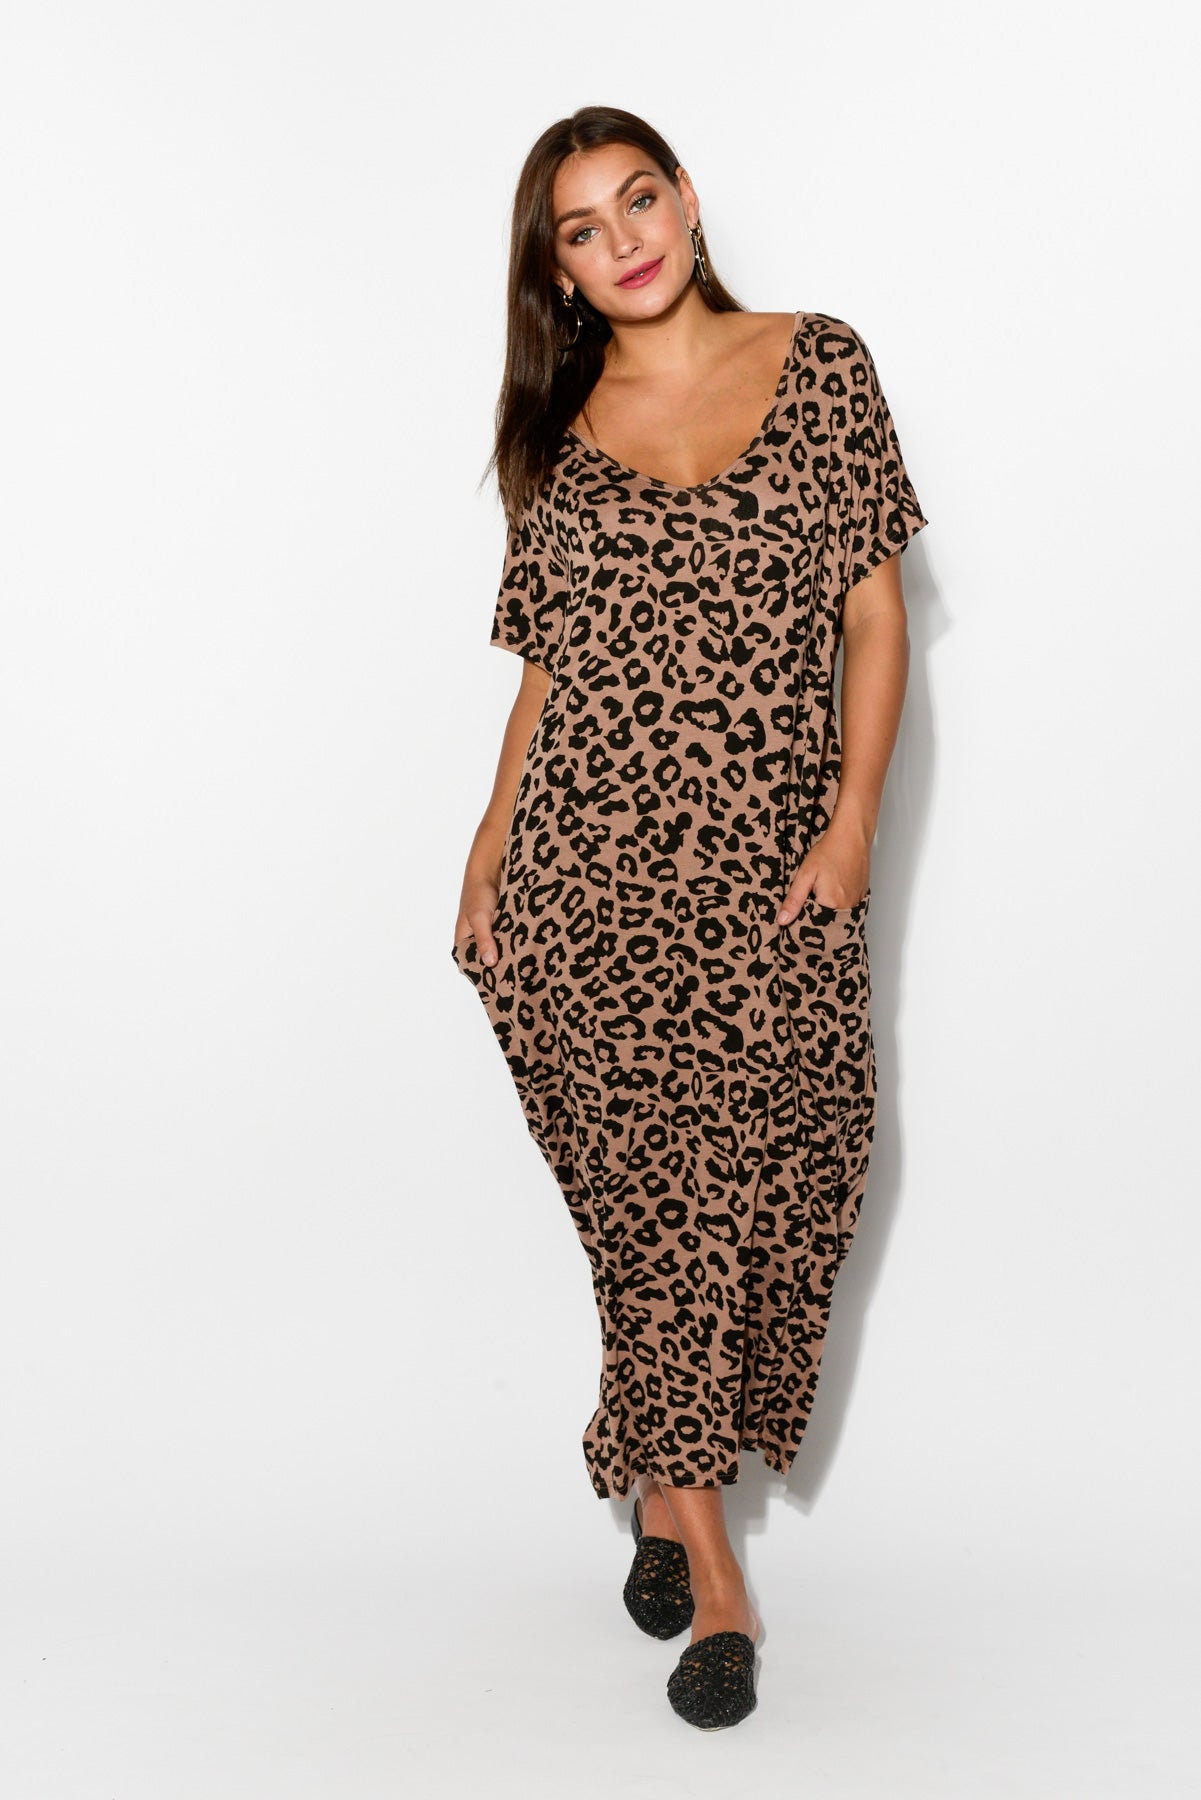 Noelle Brown Leopard Draped Dress - Blue Bungalow